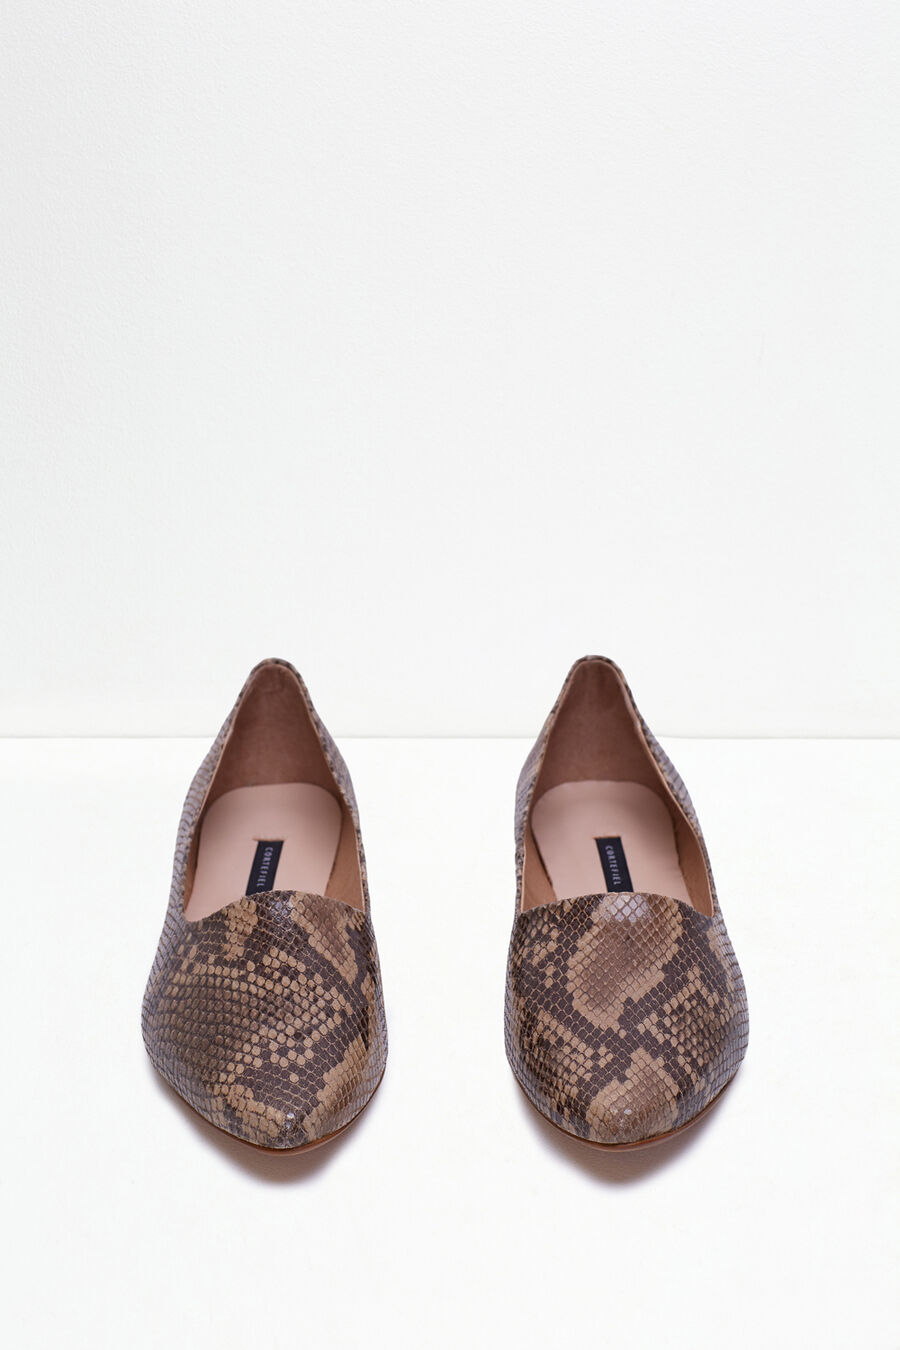 Snakeskin leather slippers